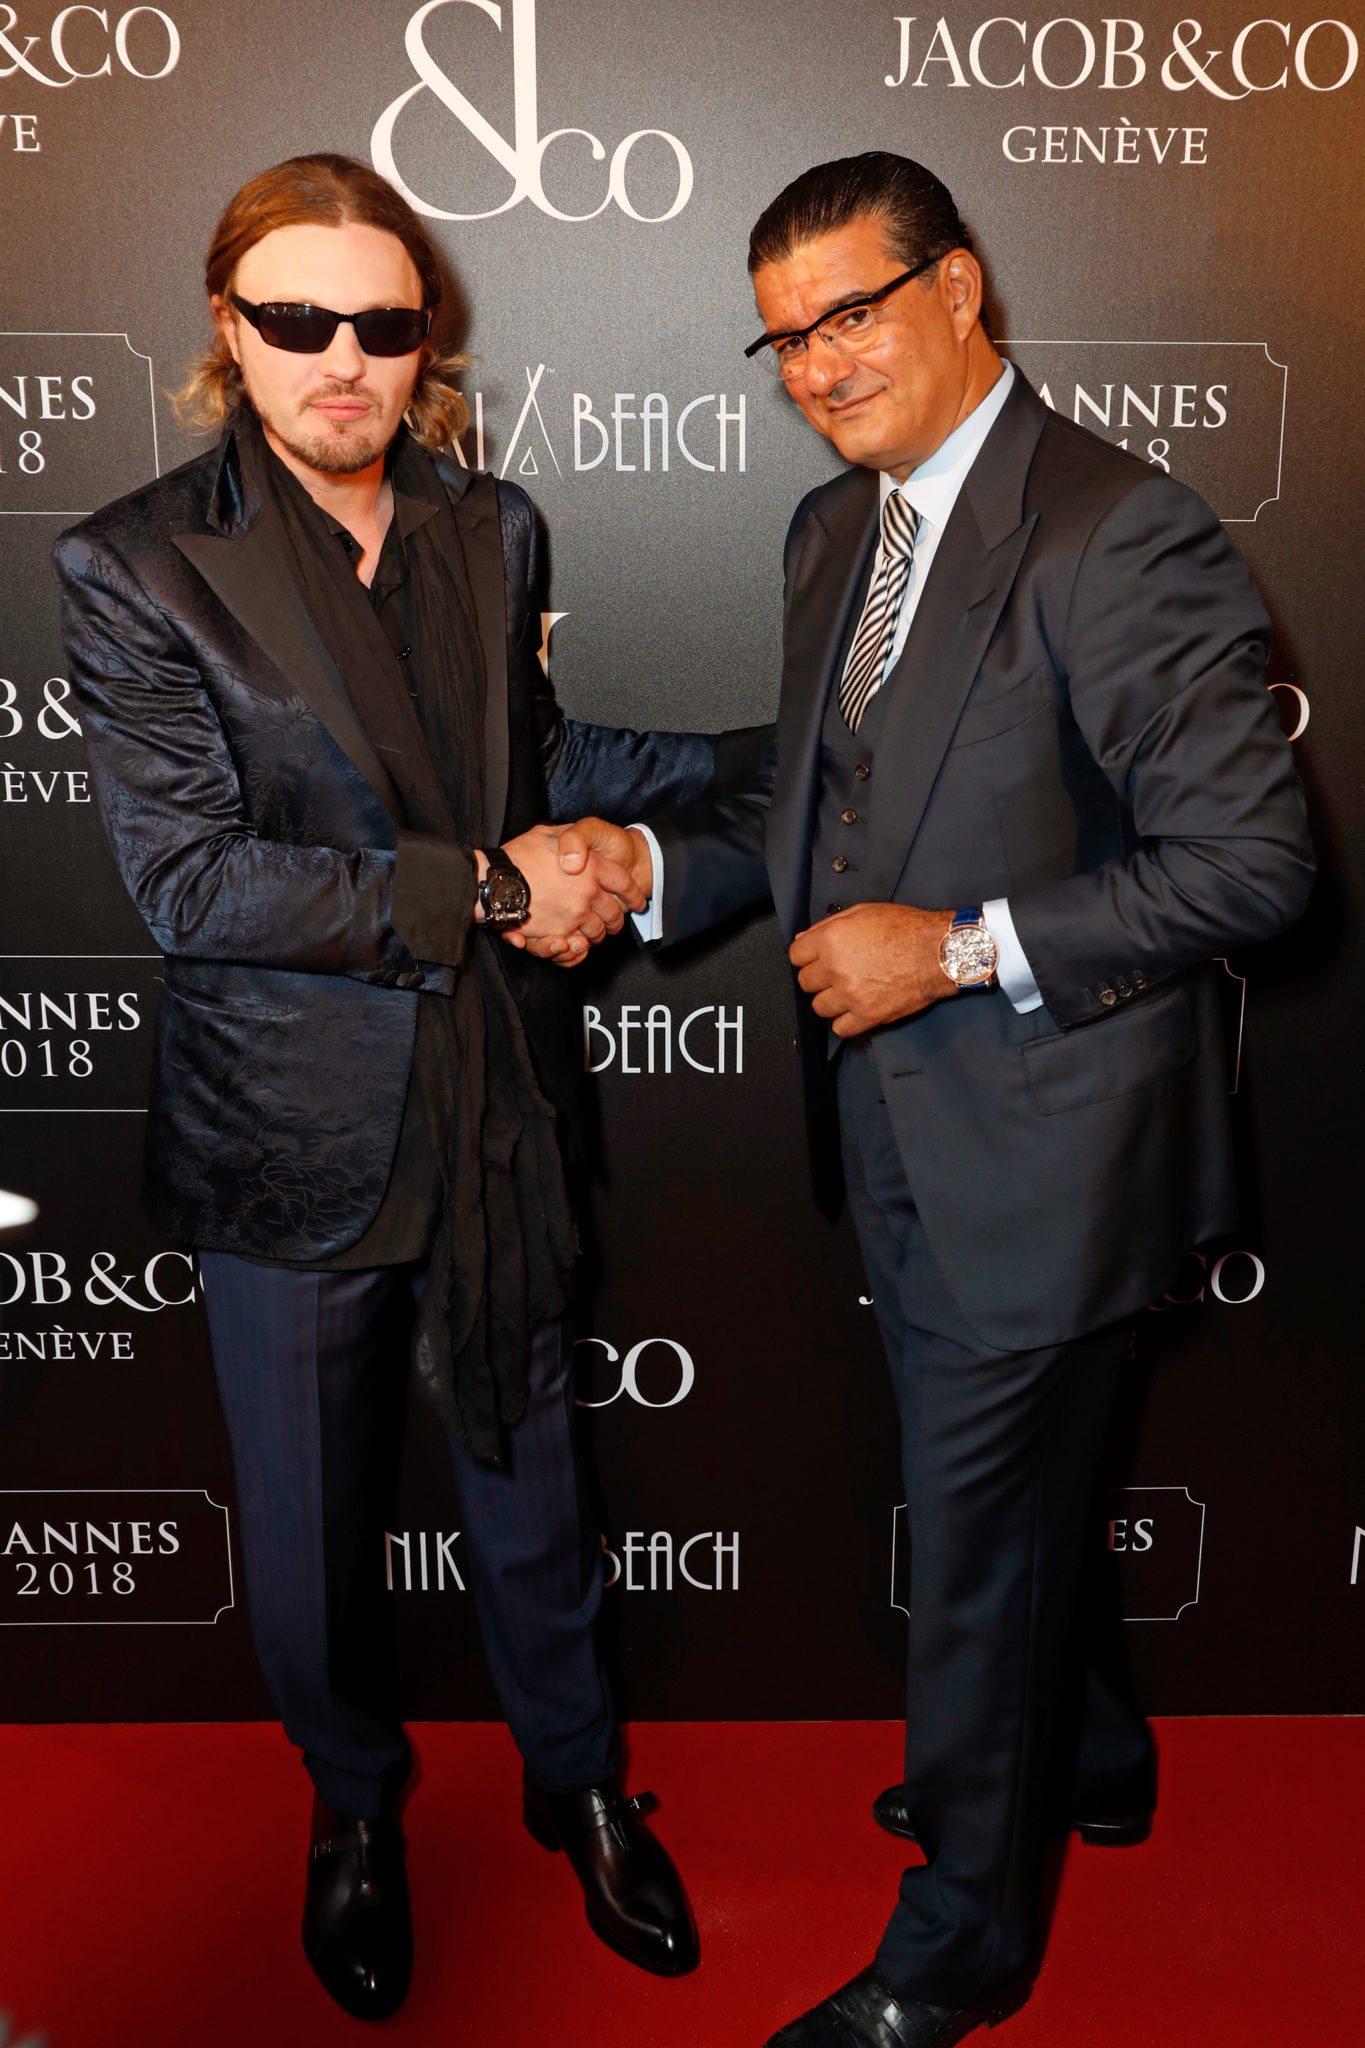 CANNES, FRANCE - MAY 16: Michael Pitt (L) and Jacob Arabo attend the Jacob & Co Cannes 2018 party at Nikki Beach on May 16, 2018 in Cannes, France. Pic Credit: Dave Benett *** Local Caption *** Michael Pitt; Jacob Arabo